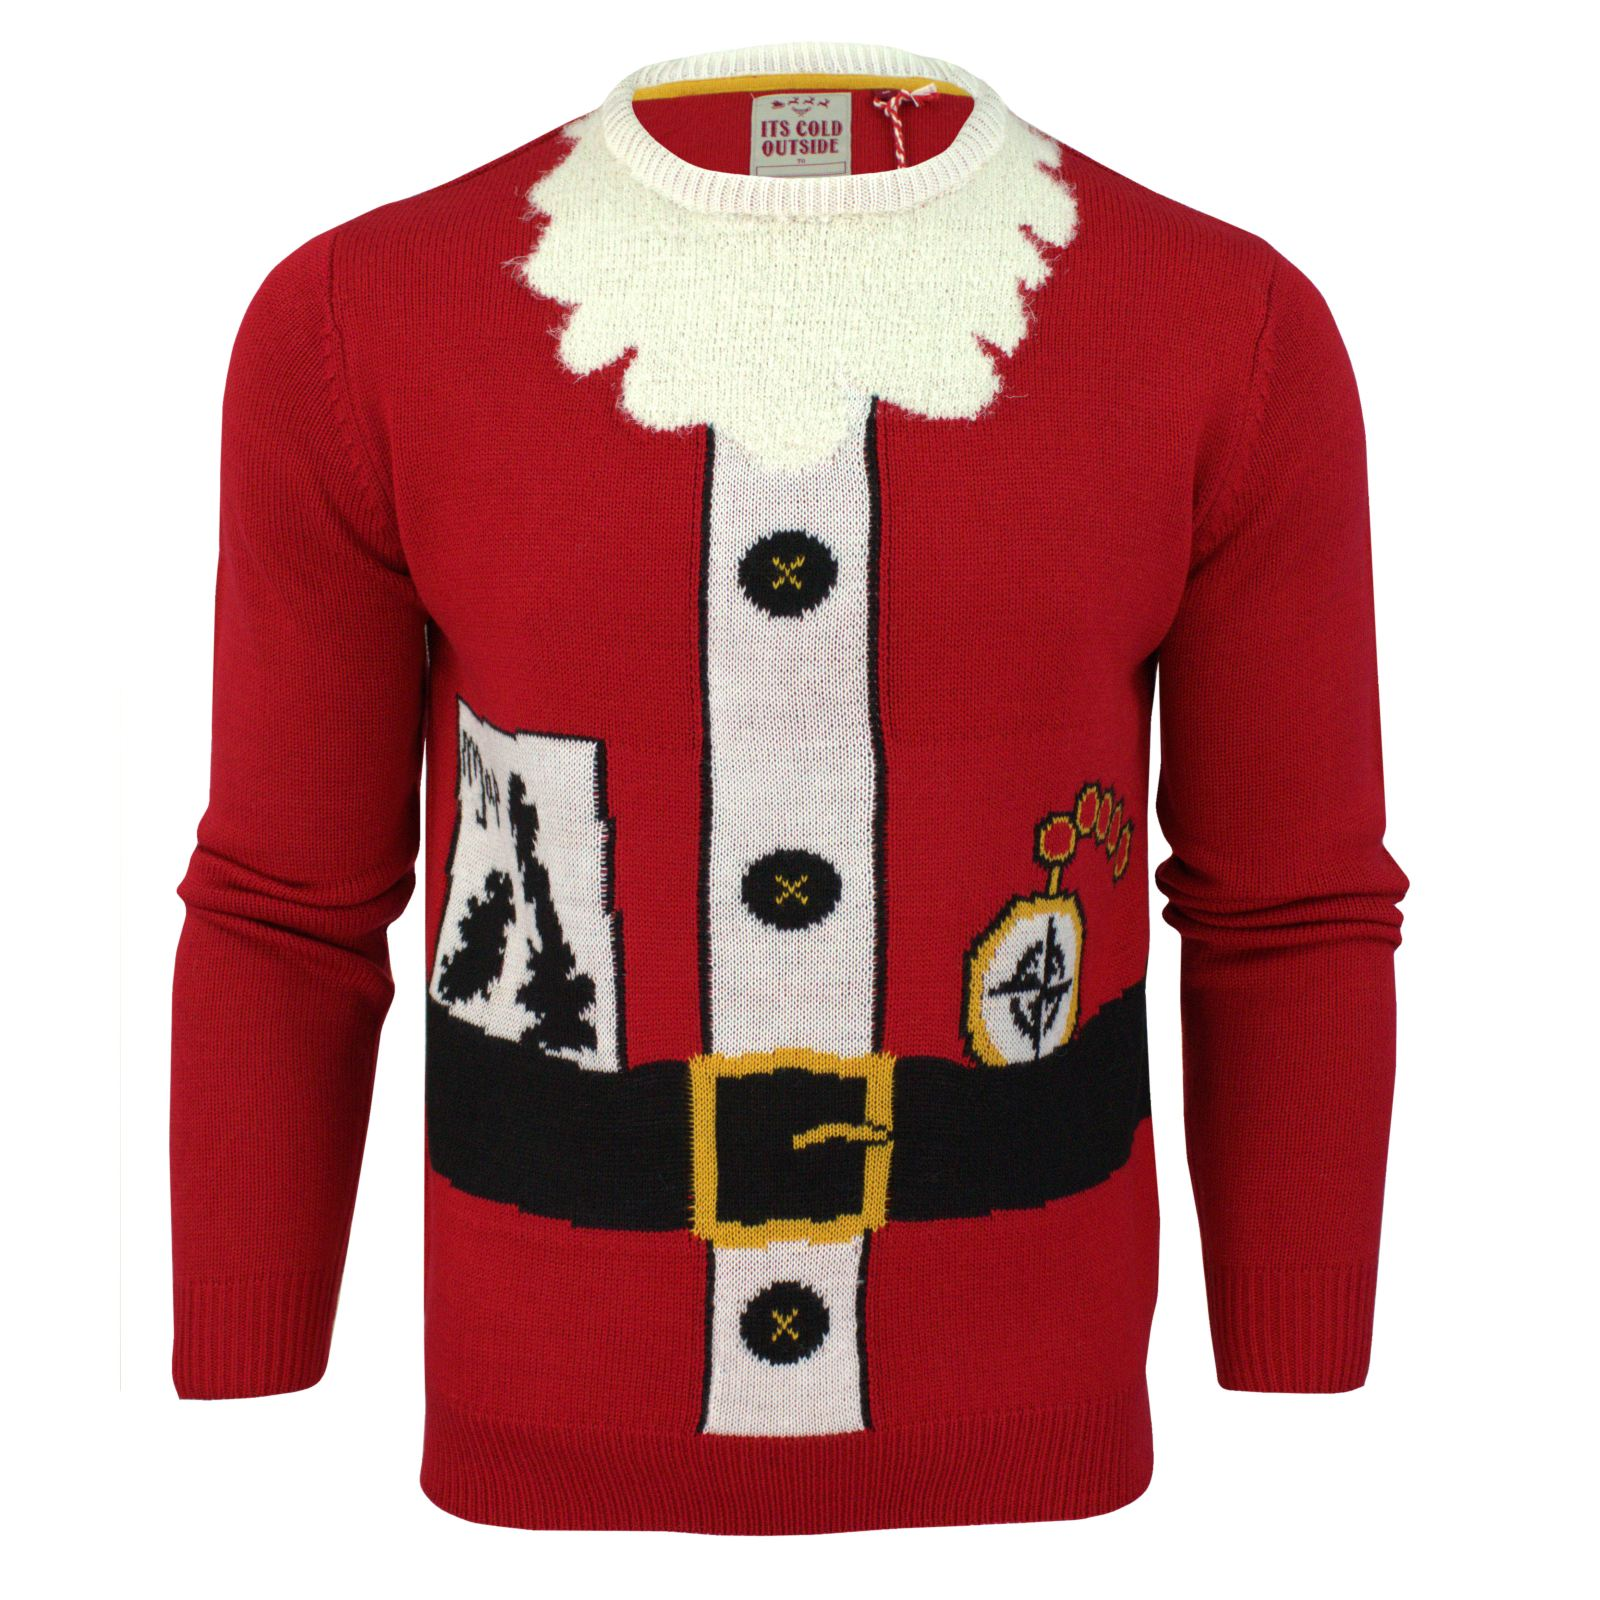 ... -Christmas-Jumper-Novelty-Threadbare-3D-Santa-Elf-Crew-Neck-Sweater